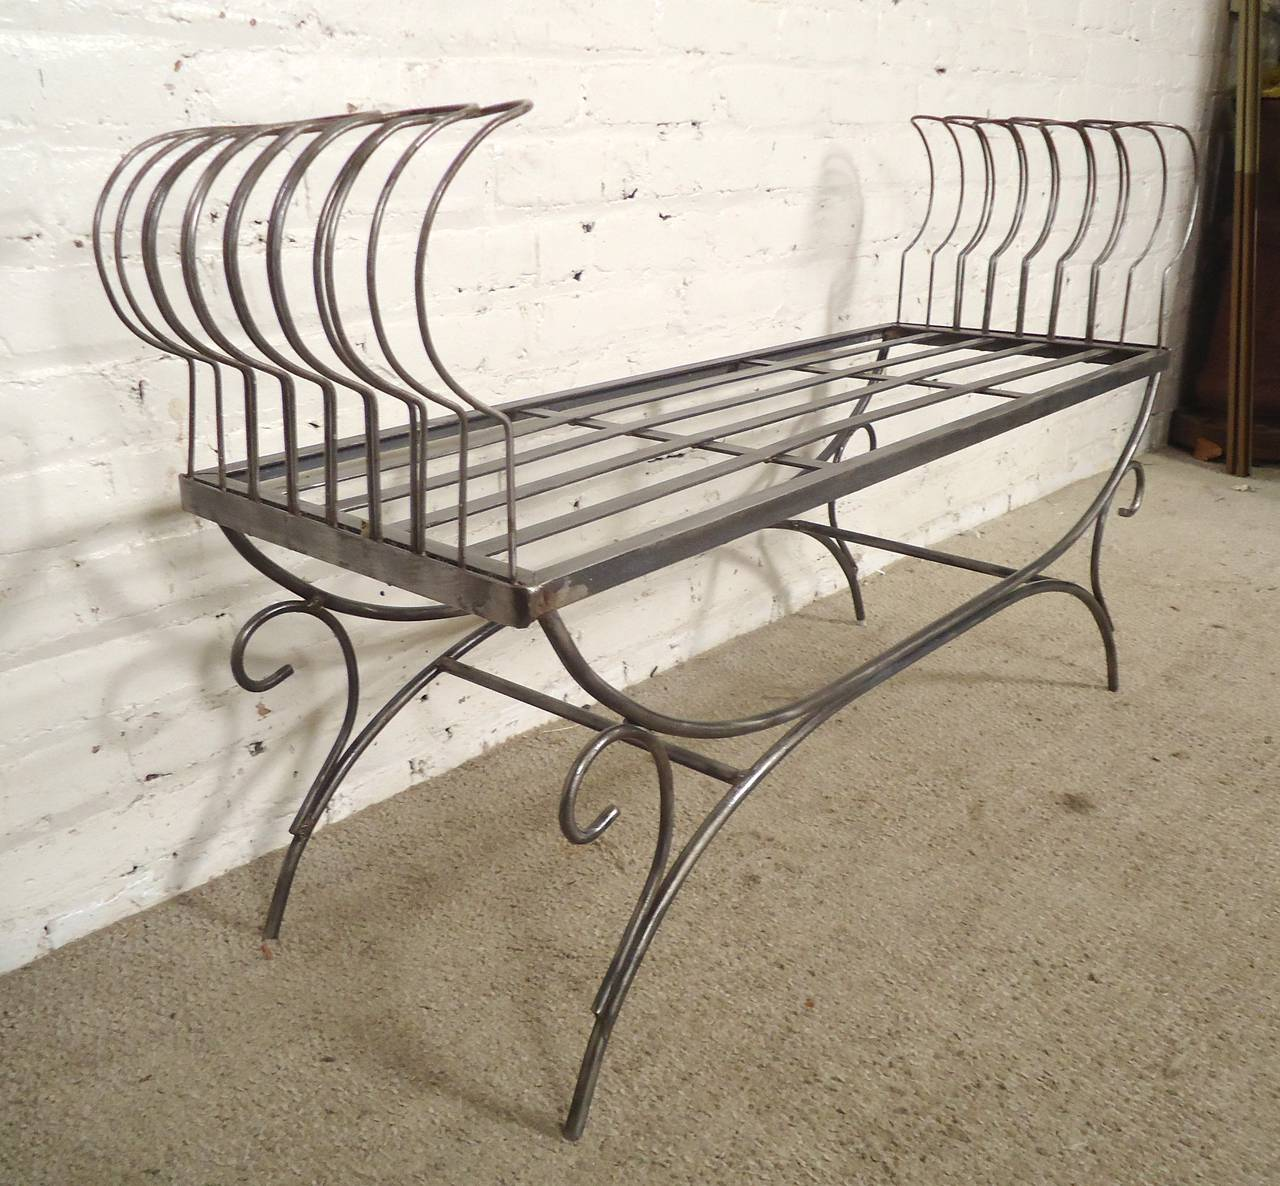 Mid-20th Century Rare Iron Bench with Ornamental Detailing For Sale